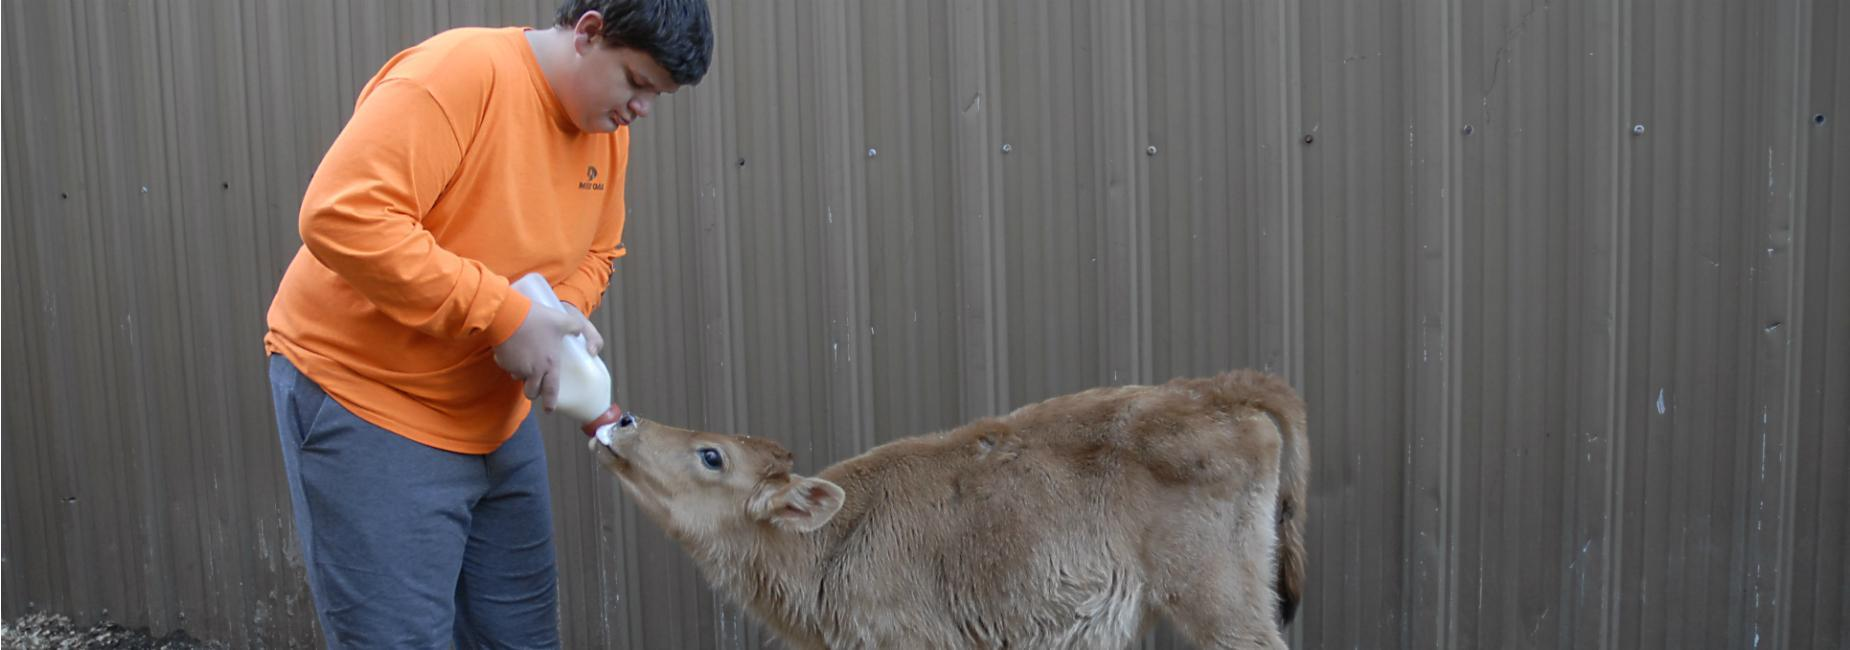 Student bottle-feeding small brown calf in agriculture class